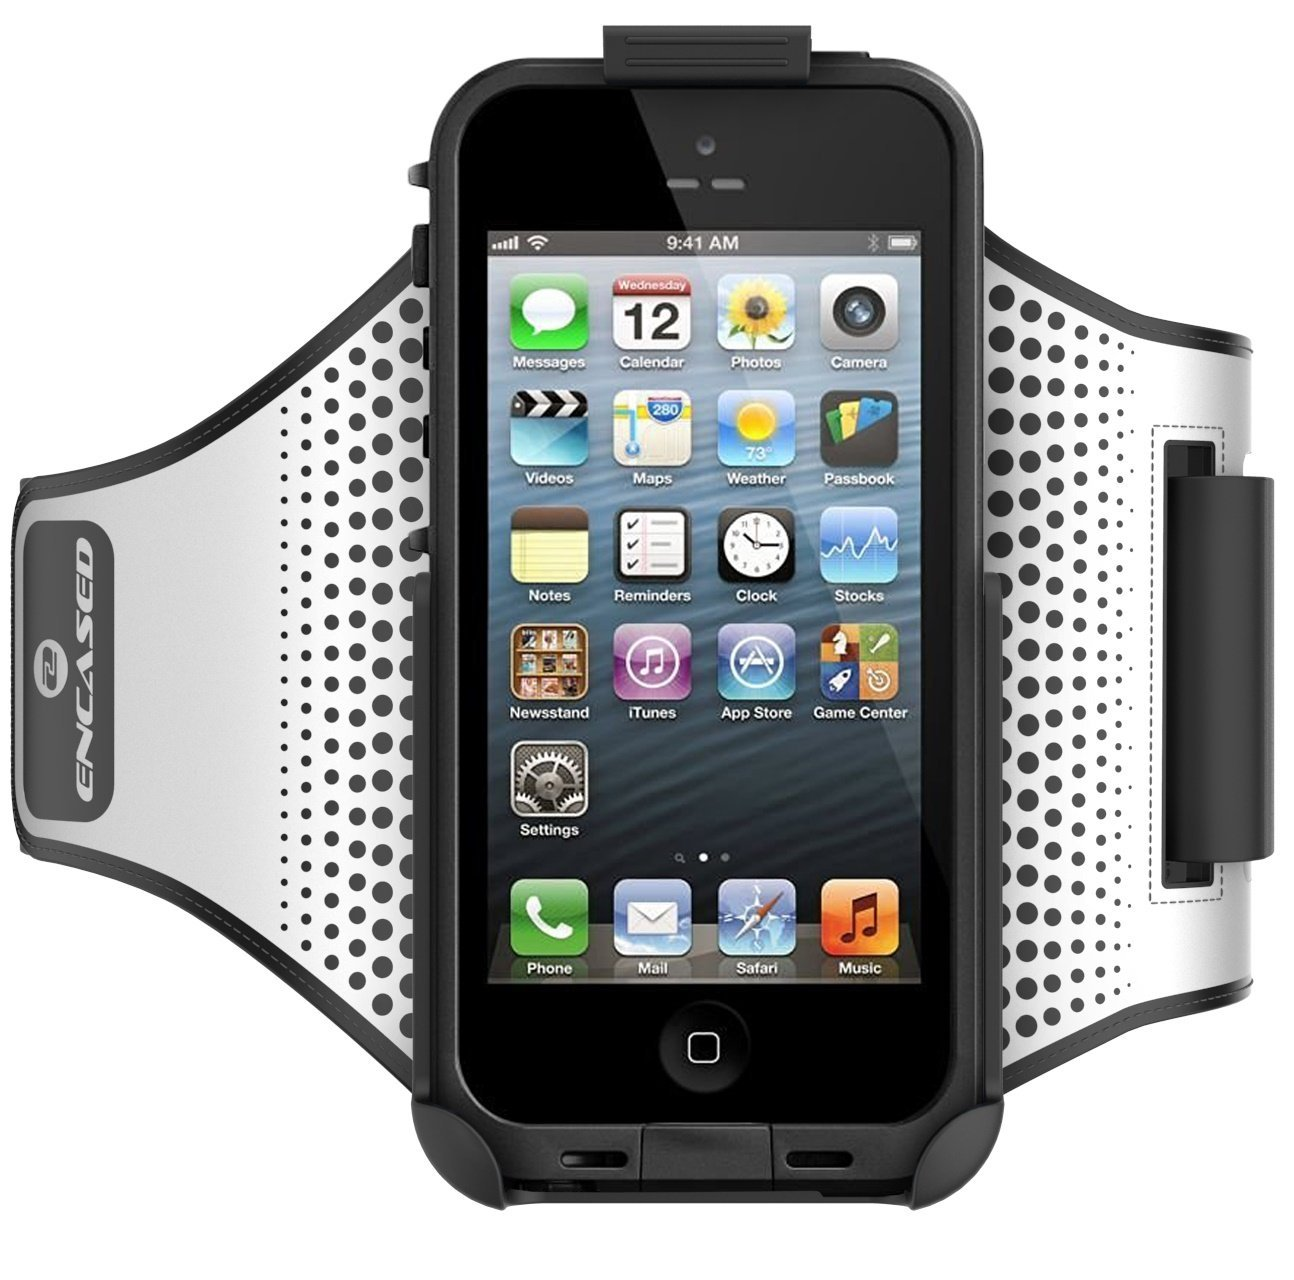 iphone 5c lifeproof case ebay armband for lifeproof iphone 5c fre nuud 6339